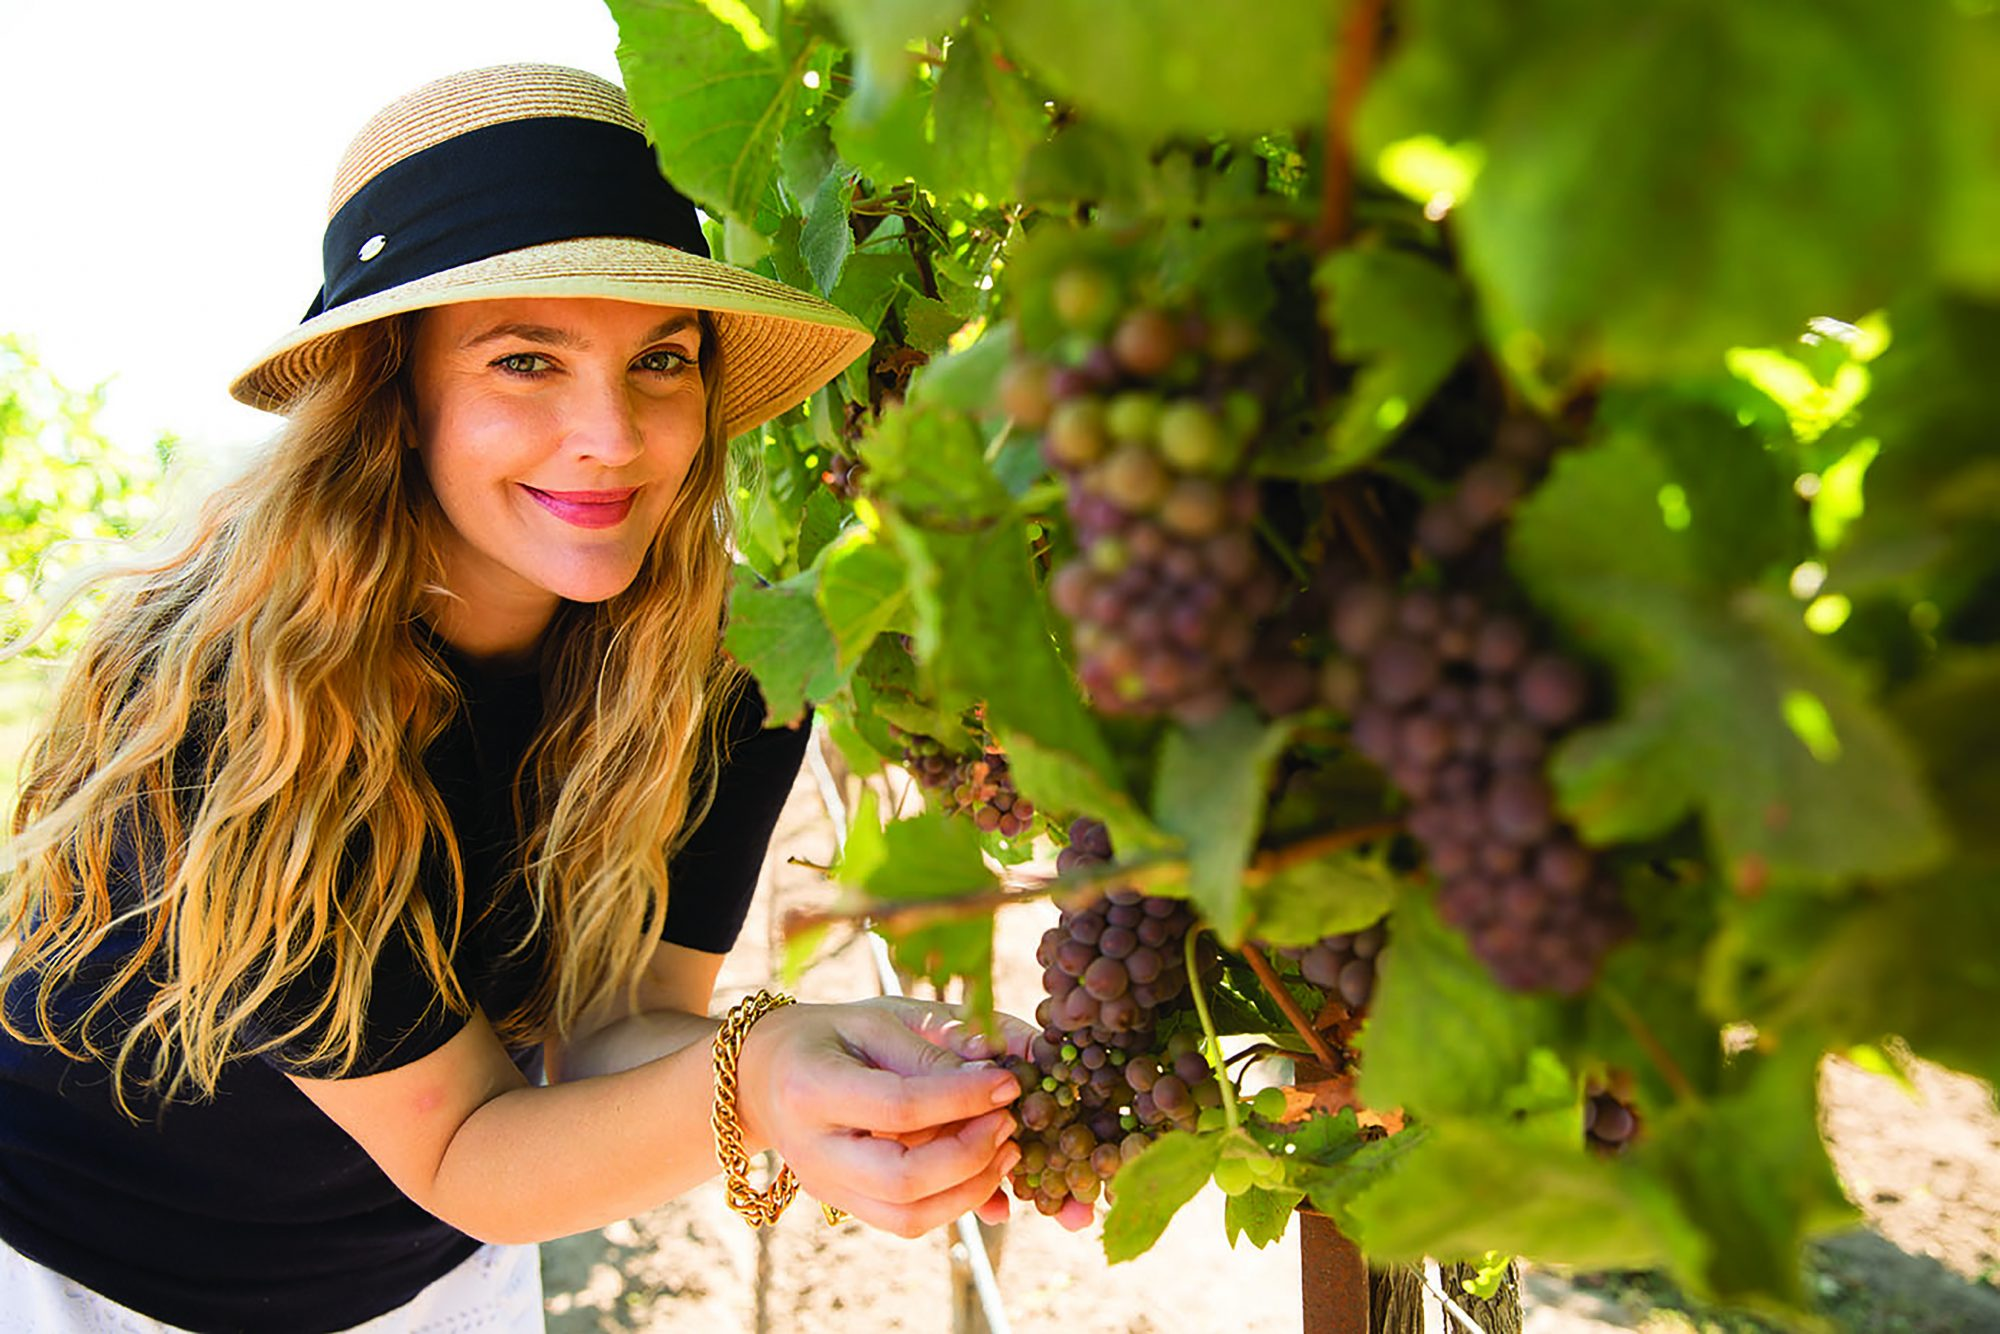 What Drew Barrymore Loves Most About Wine